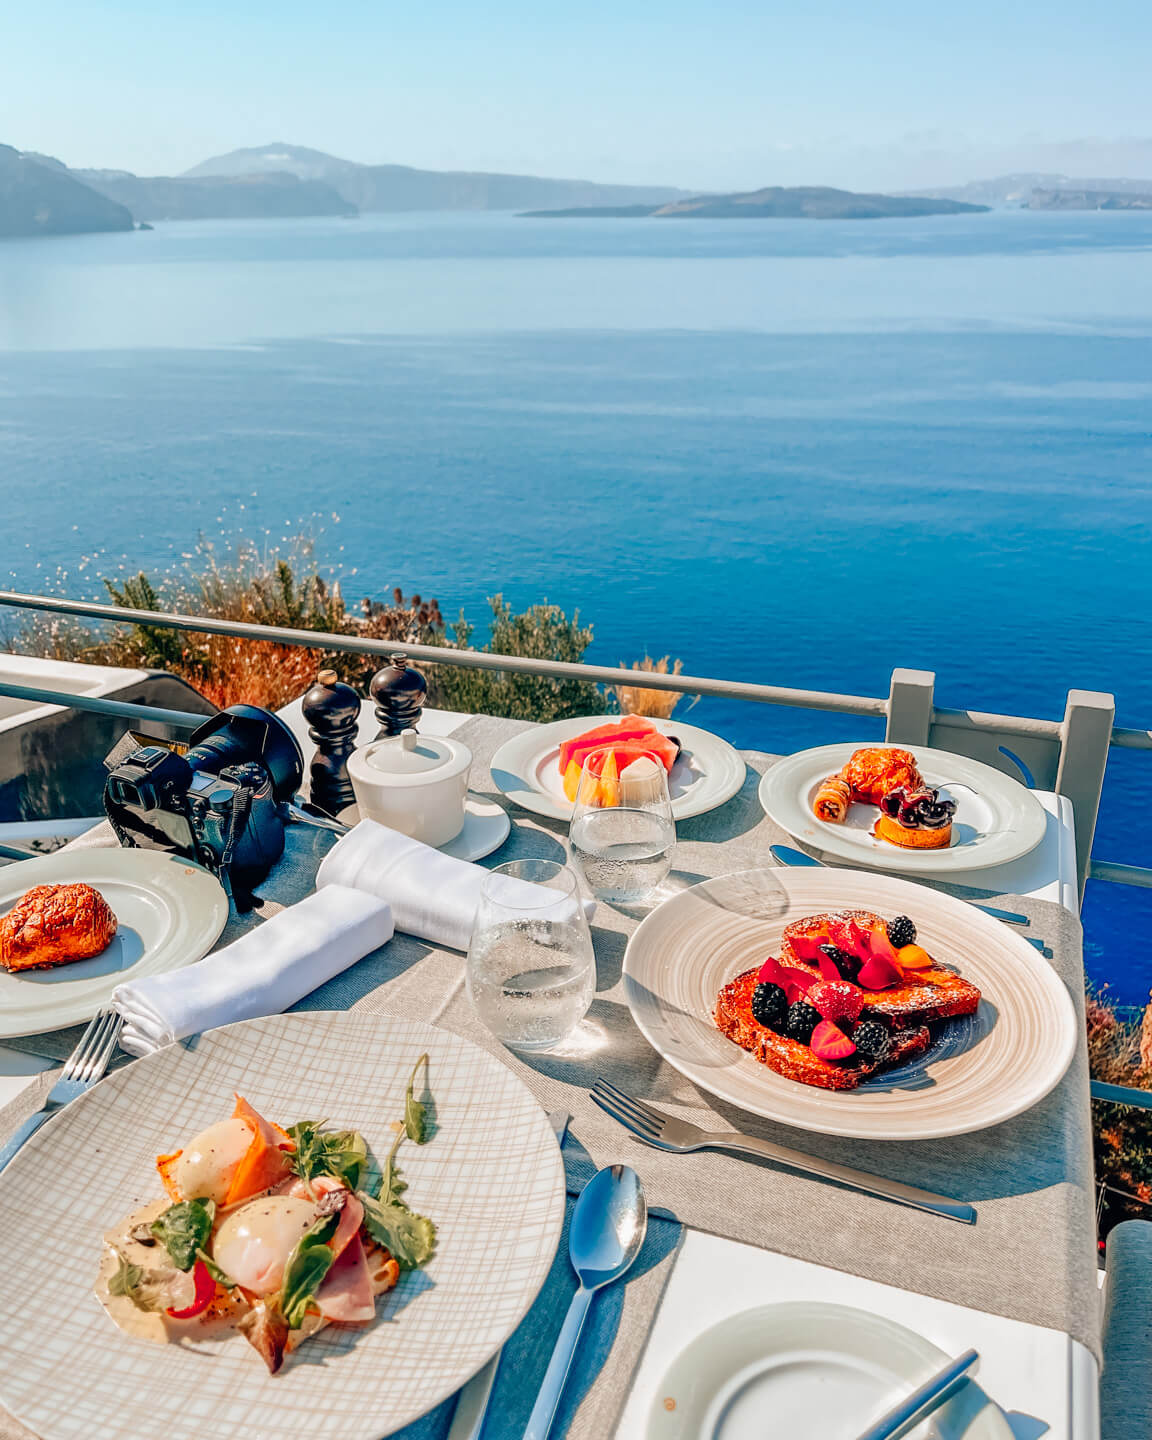 breakfast table with view over the sea in santorini, greece